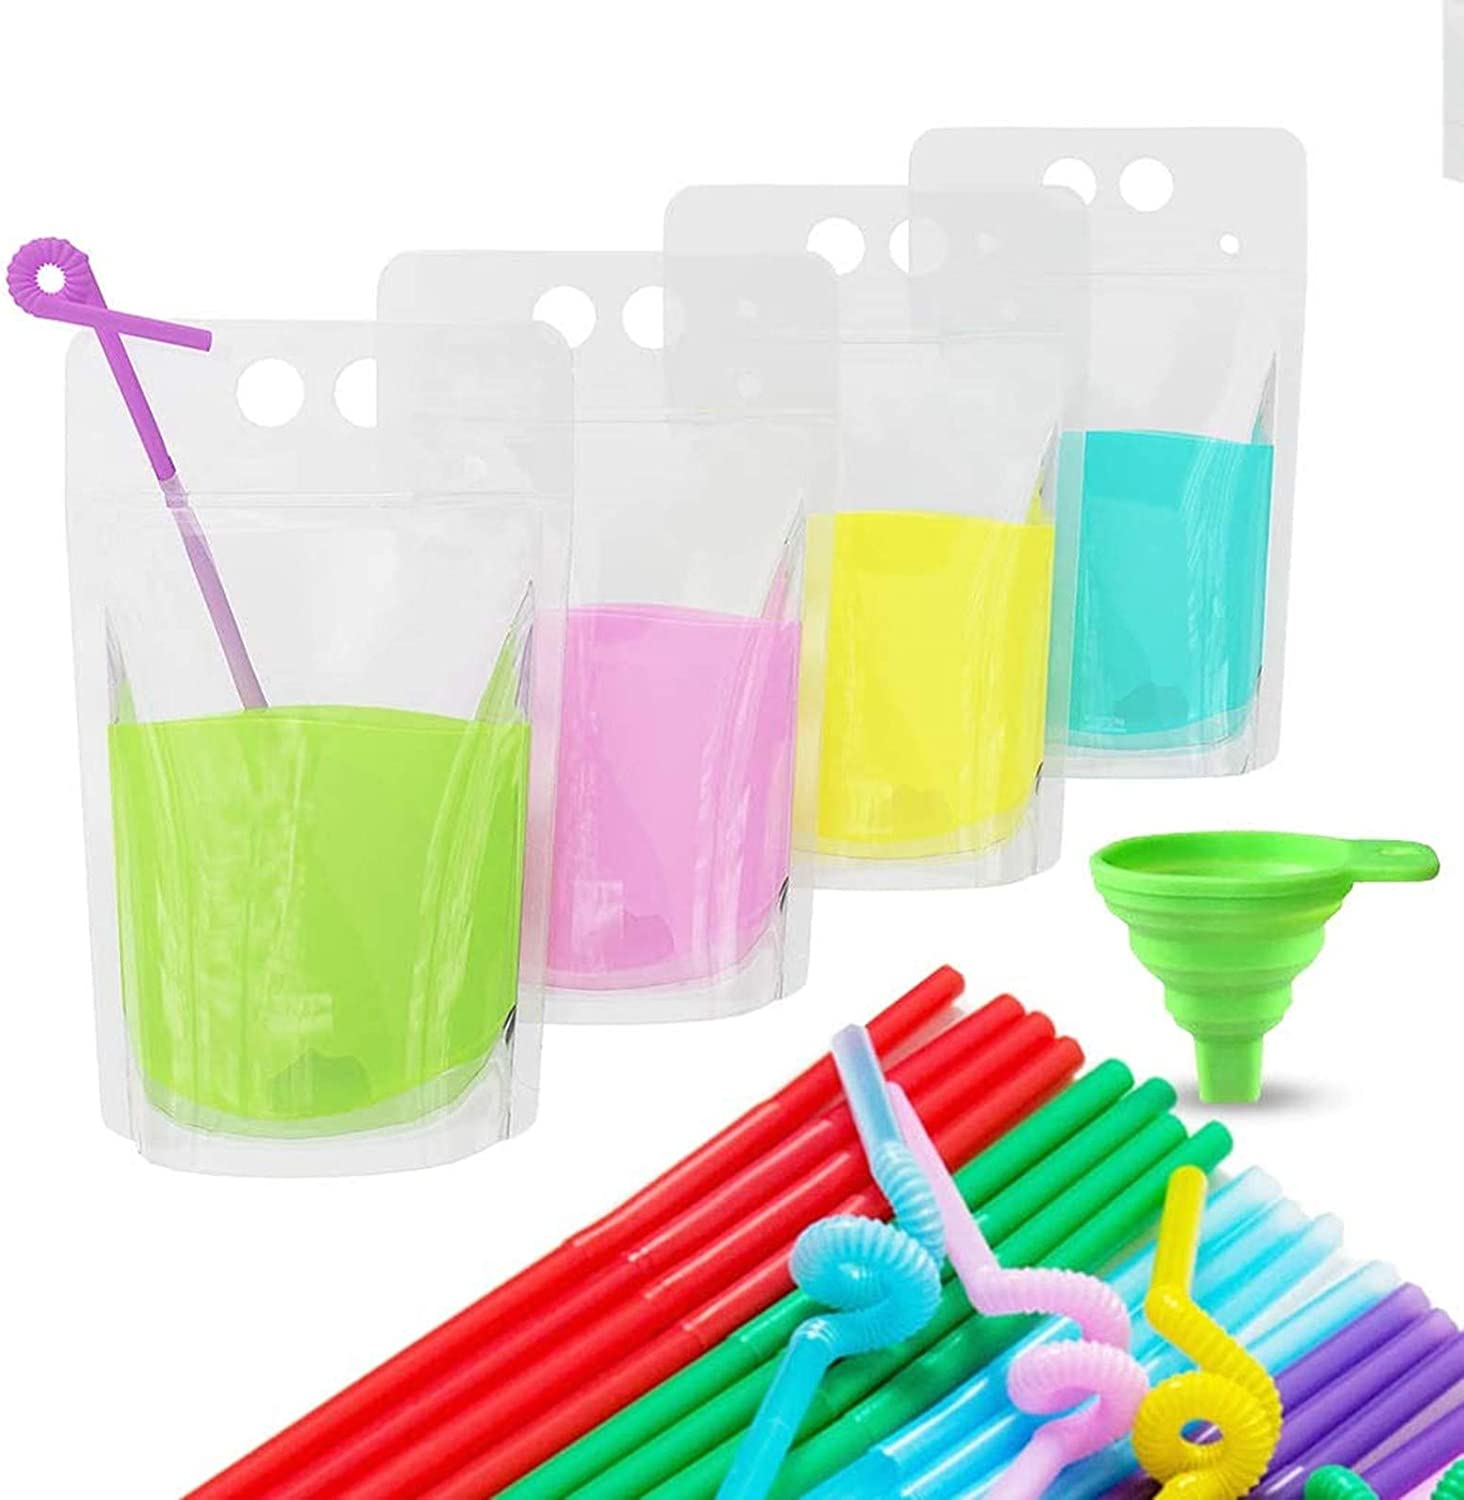 Acerich 100 Pcs Drink Pouches with Straws Stand-Up Hand-Held Translucent Reclosable Heat-Proof Plastic Zipper Juice Bags, one size, Green